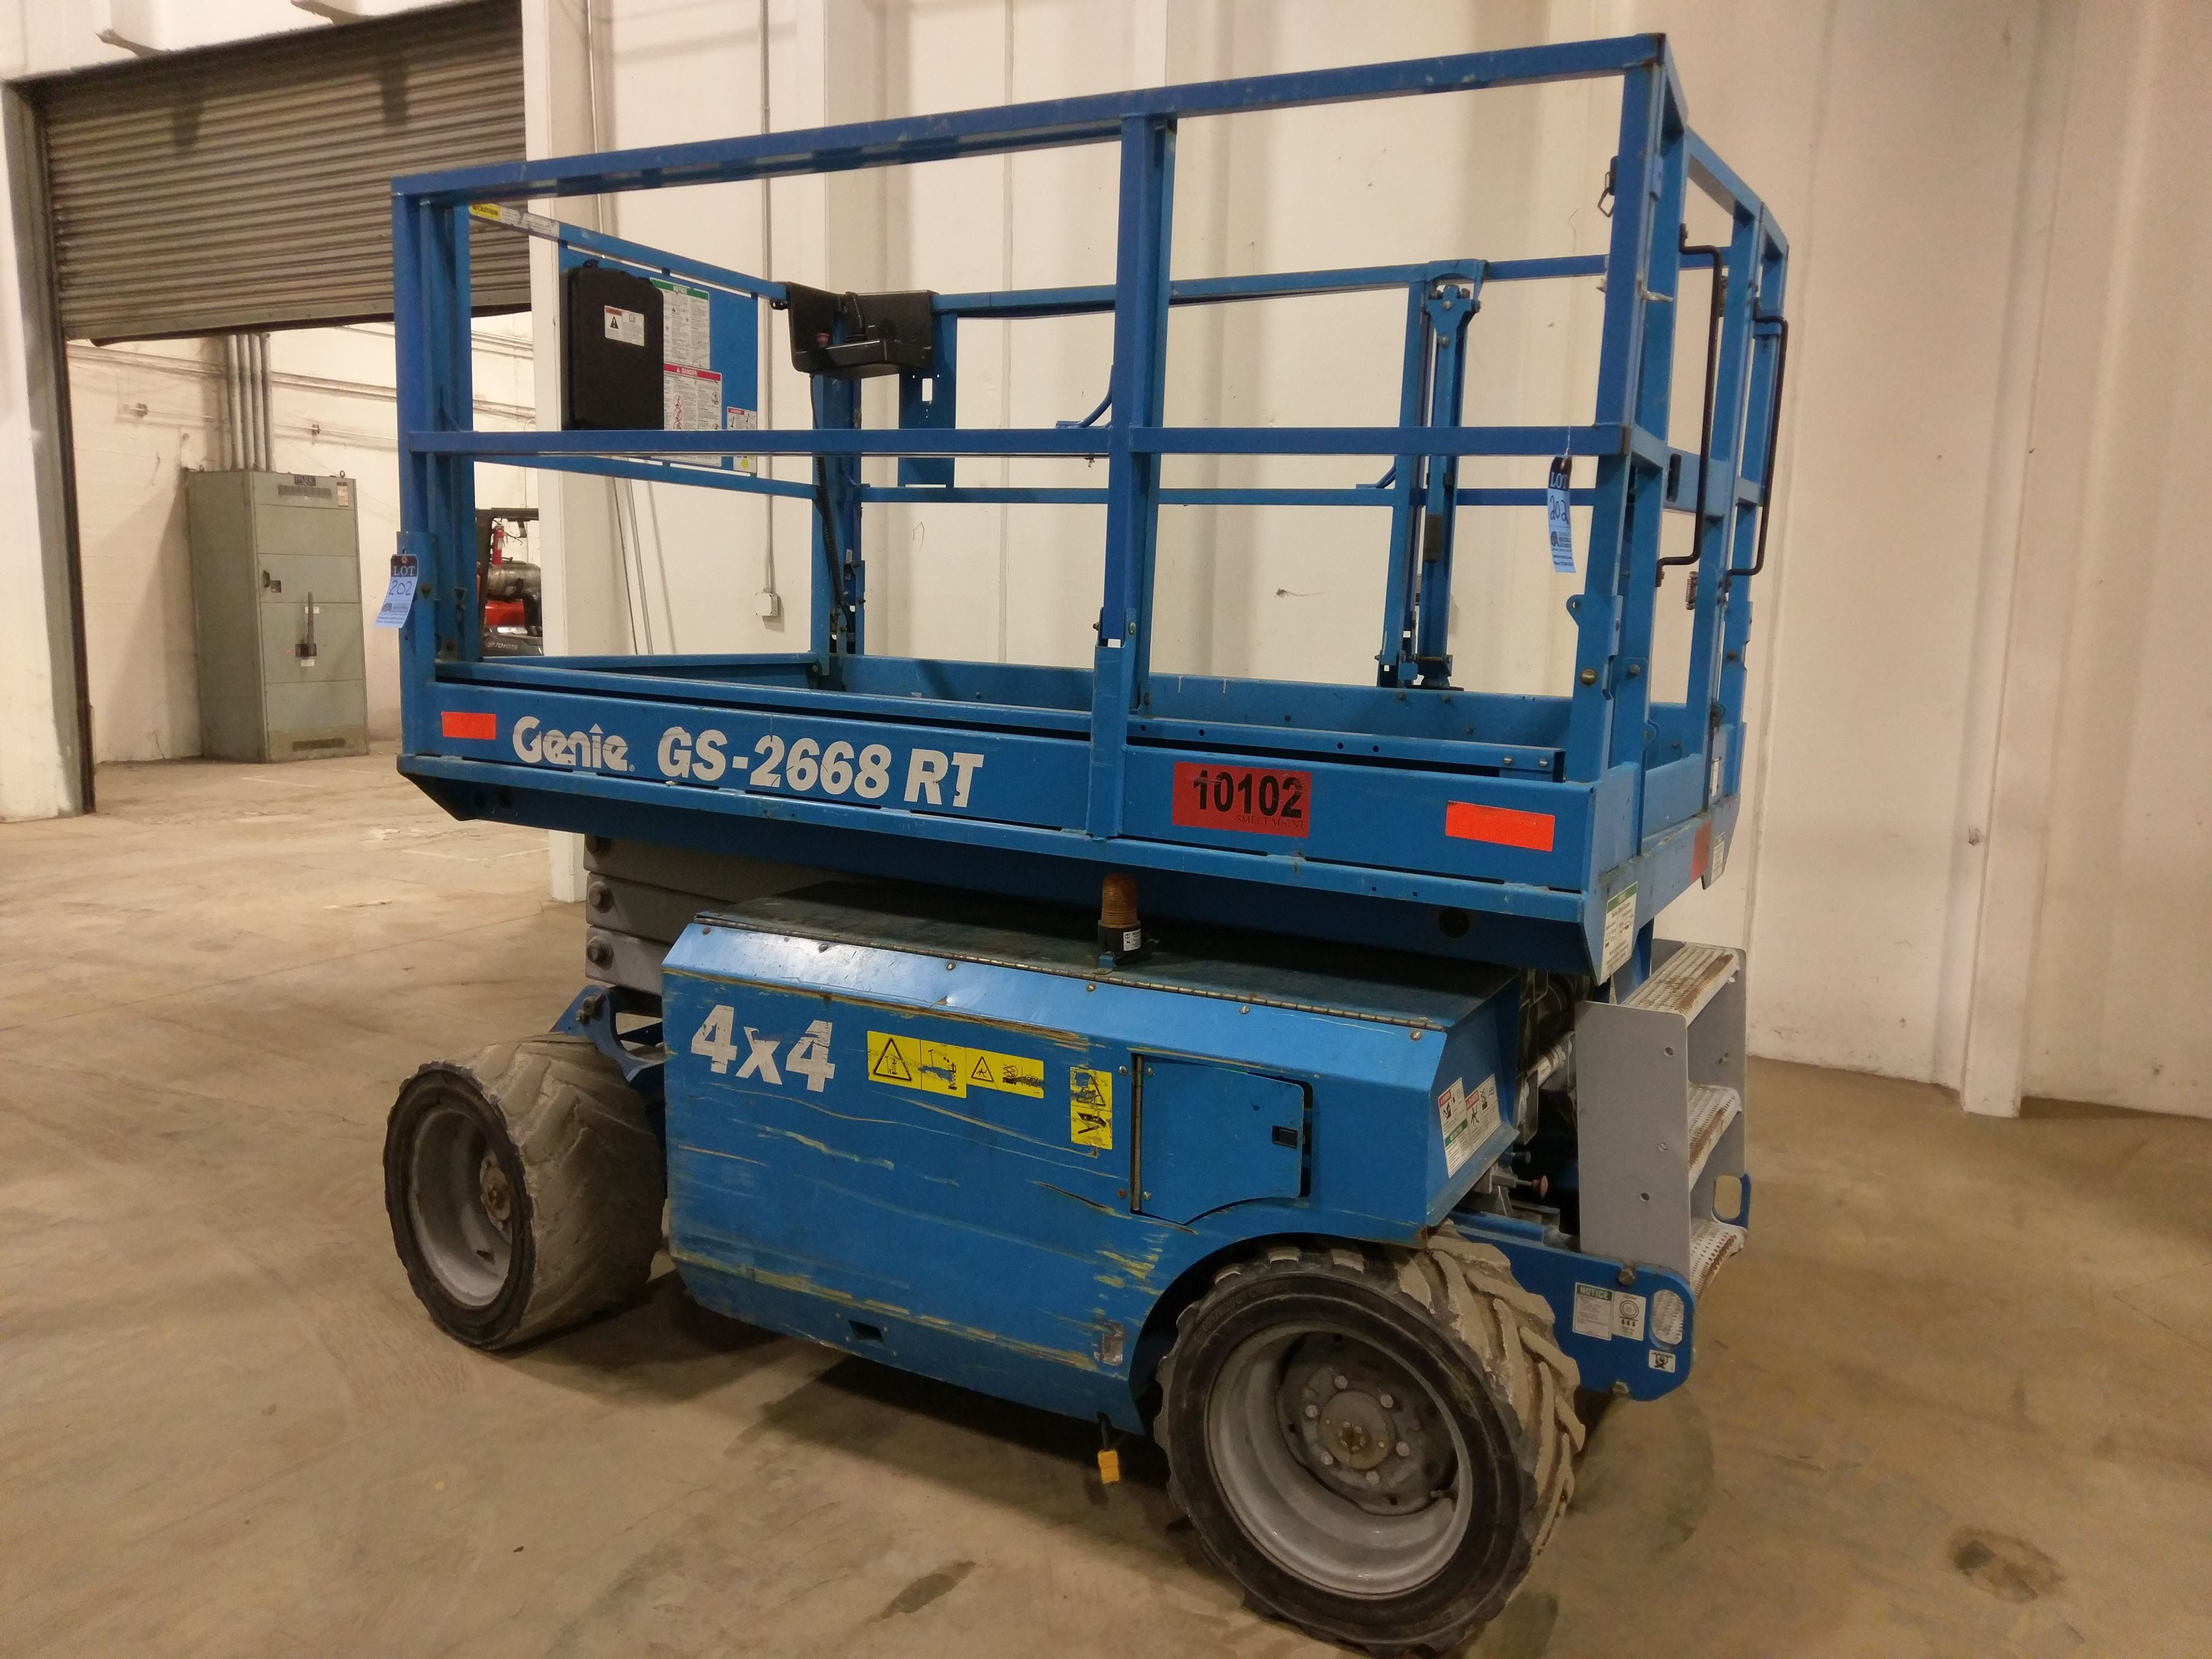 Genie Four-Wheel Drive All Terrain Scissor Lift